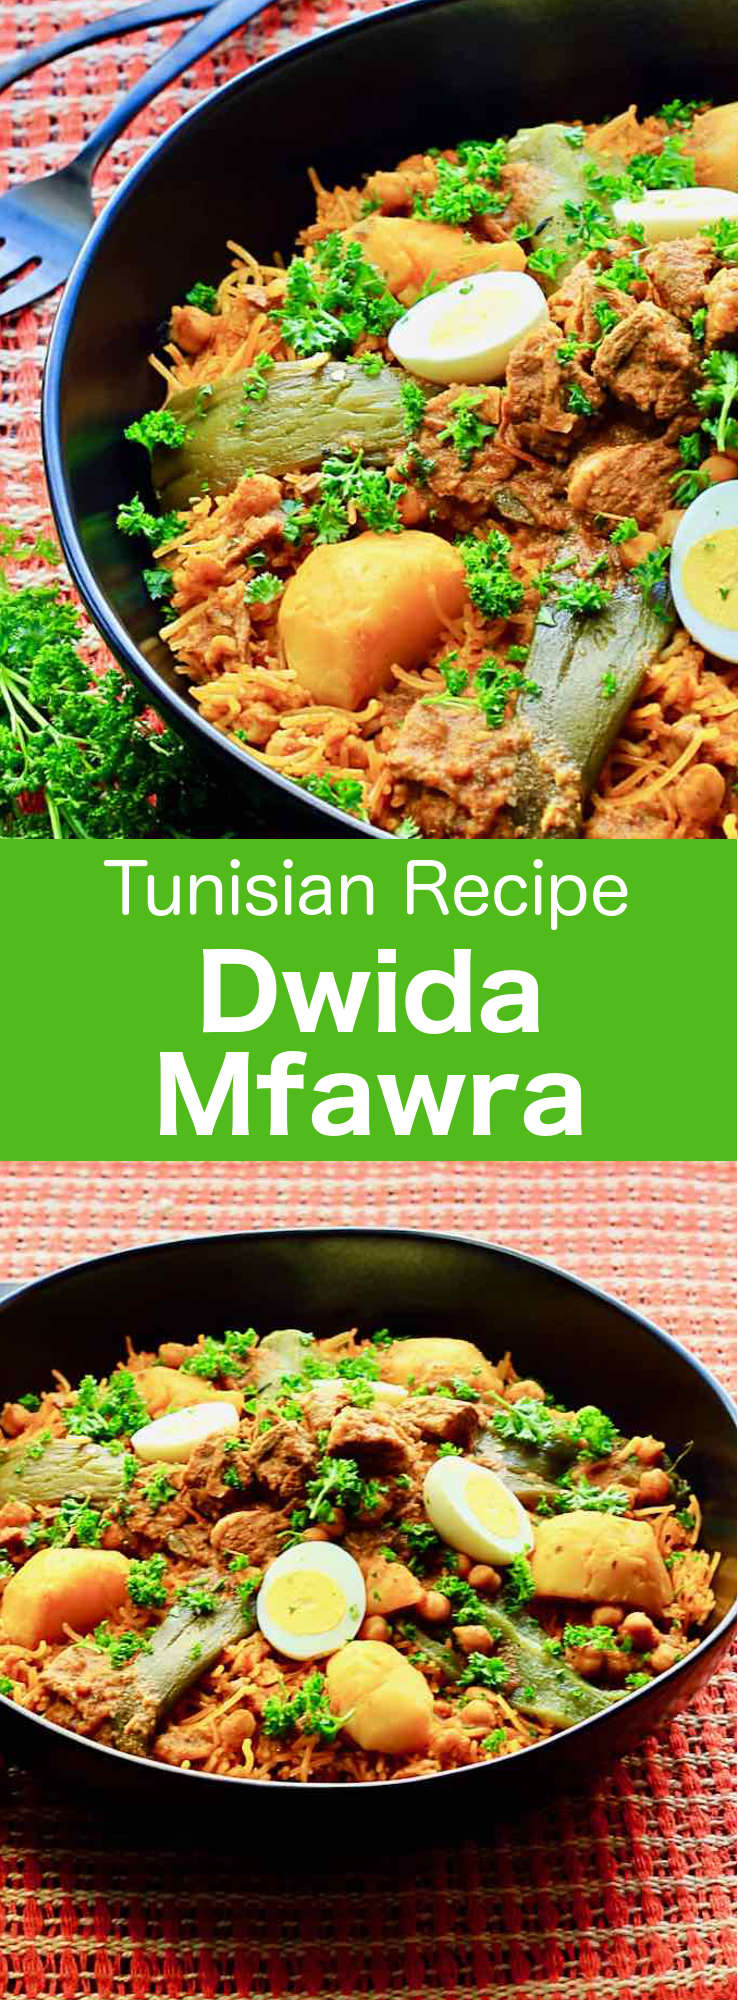 Dwida mfawra is a traditional Tunisian and Algerian recipe that consists of steamed thin broken vermicelli that are baked and served with a meat stew, typically lamb or chicken. #Tunisia #Tunisian #TunisianCuisine #TunisianRecipe #NorthAfricanCuisine #NorthAfricanRecipe #NorthAfrica #Maghreb #MaghrebCuisine #WorldCuisine #196flavors